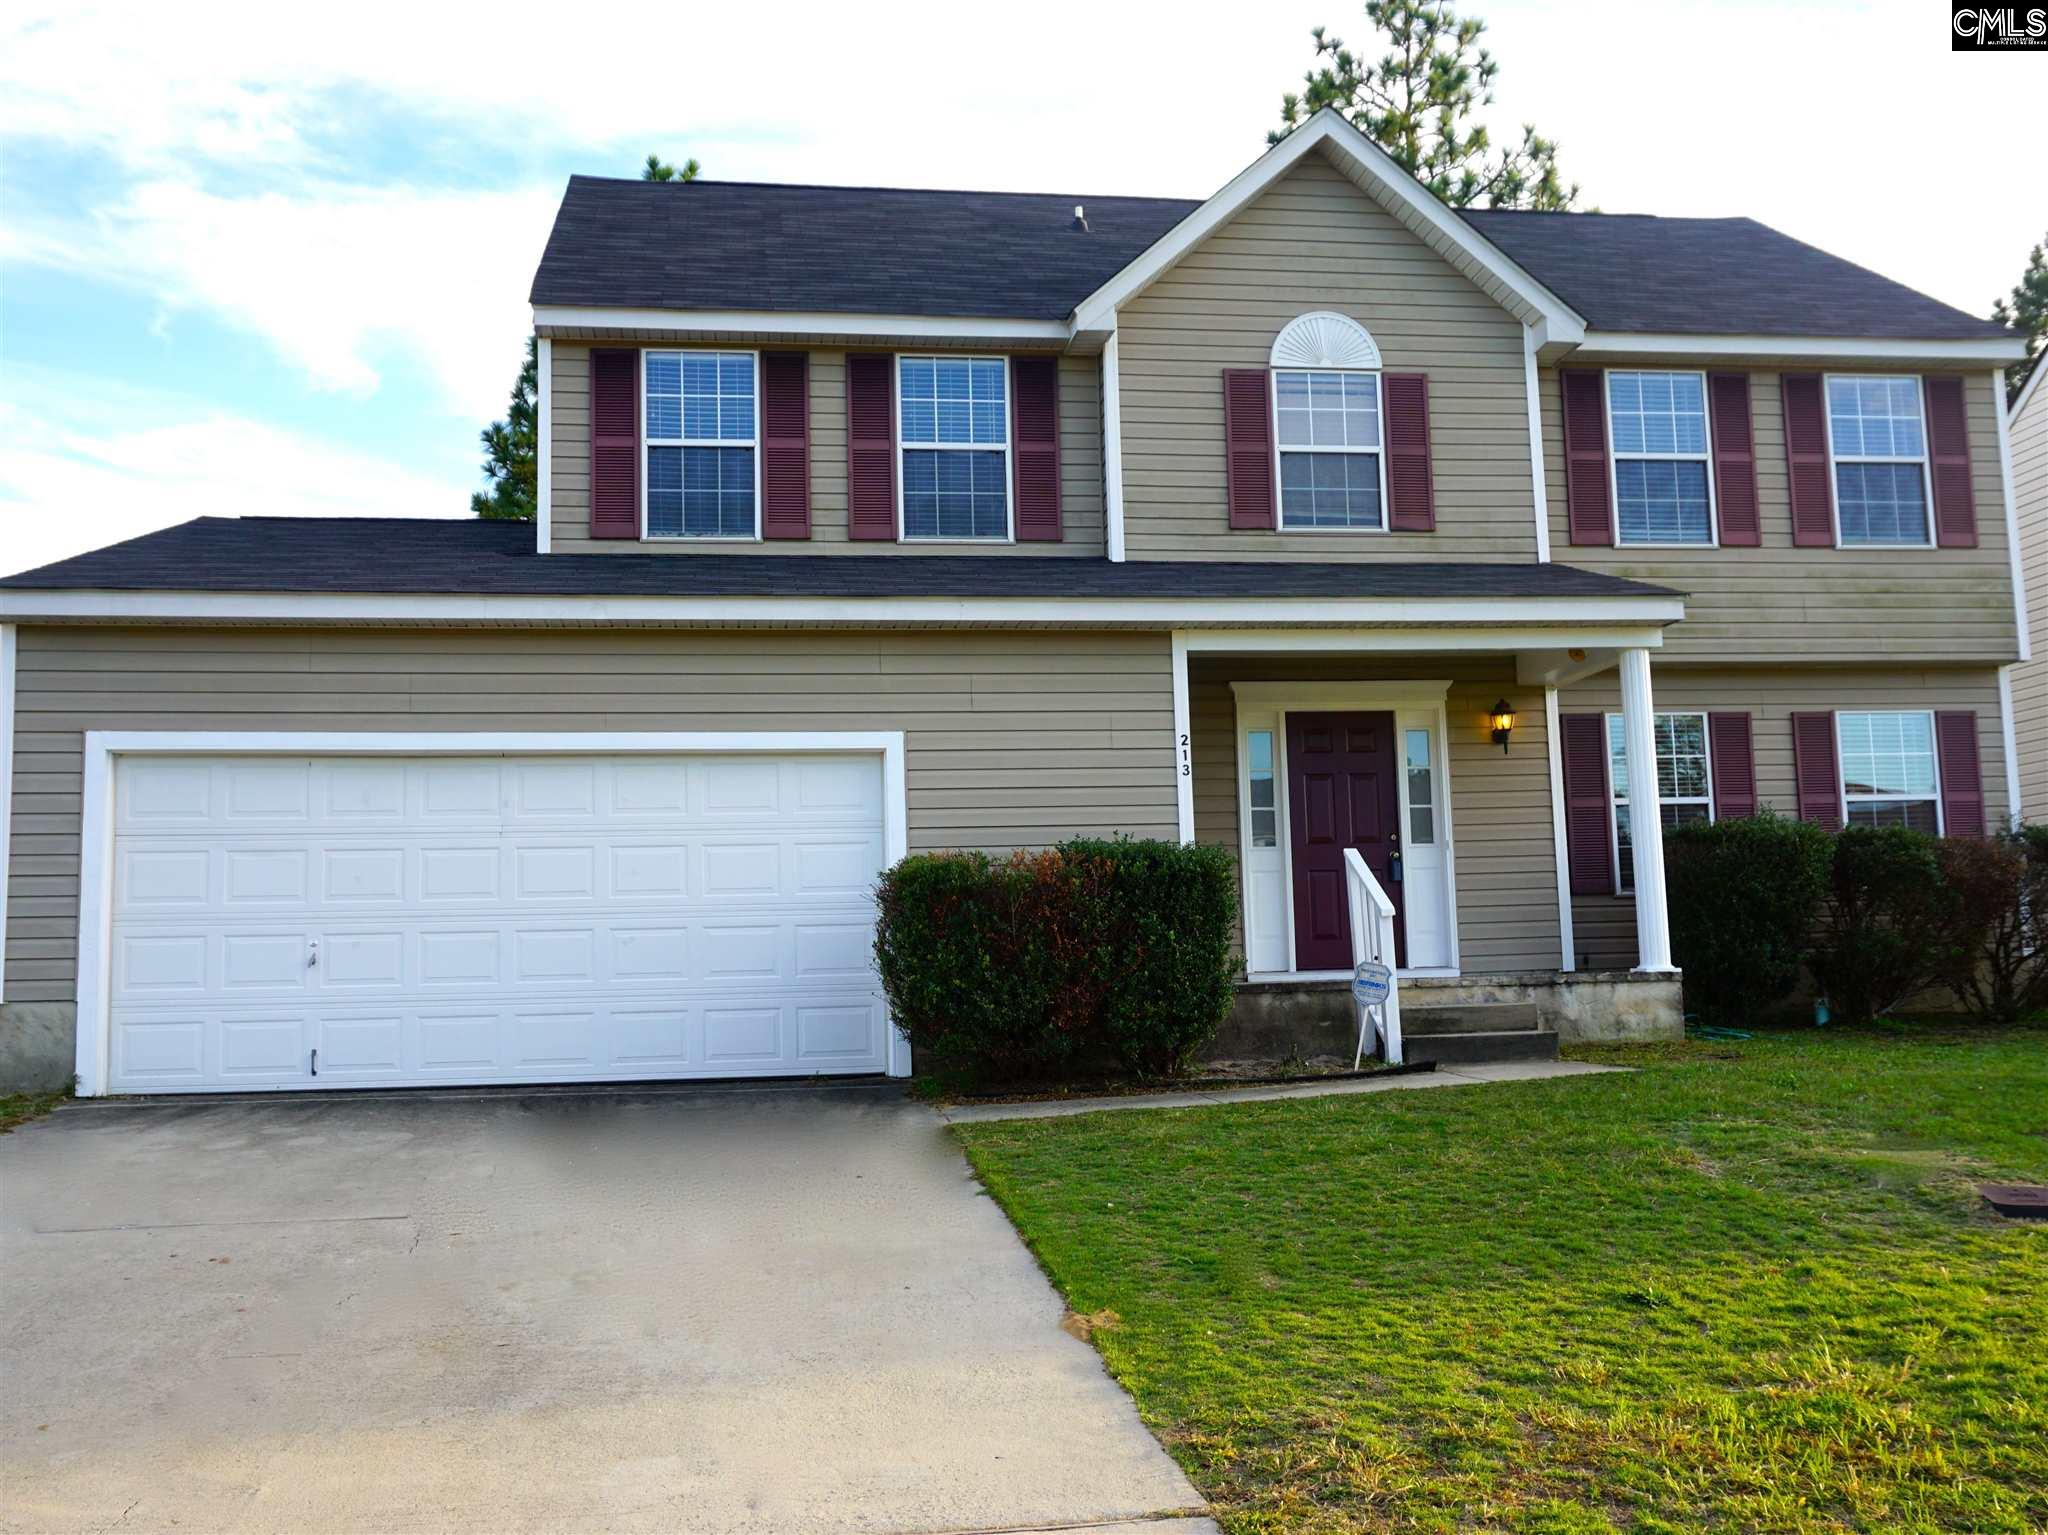 213 Sterling Hills Columbia, SC 29229-7754